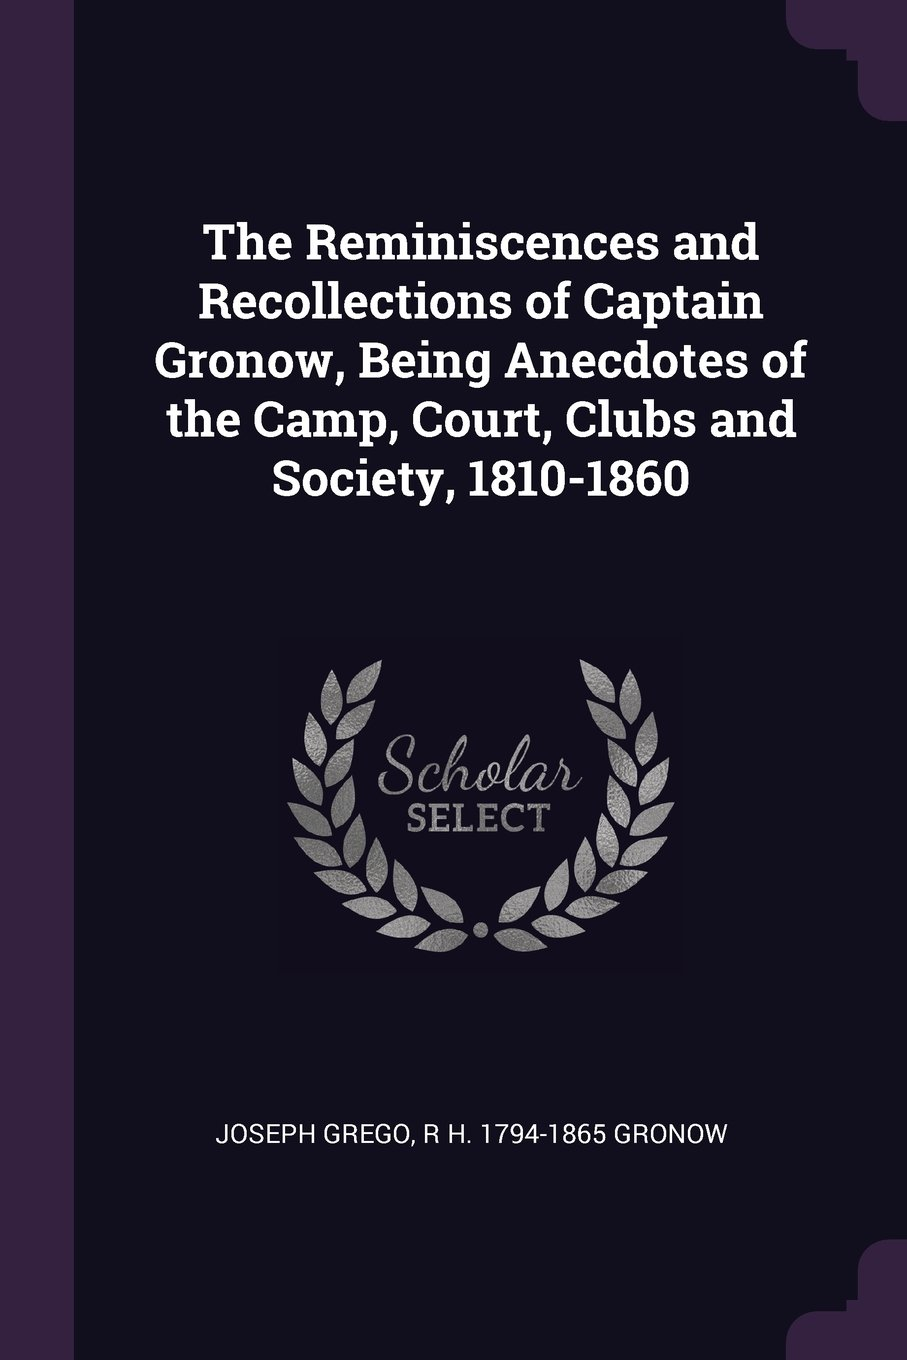 Download The Reminiscences and Recollections of Captain Gronow, Being Anecdotes of the Camp, Court, Clubs and Society, 1810-1860 PDF